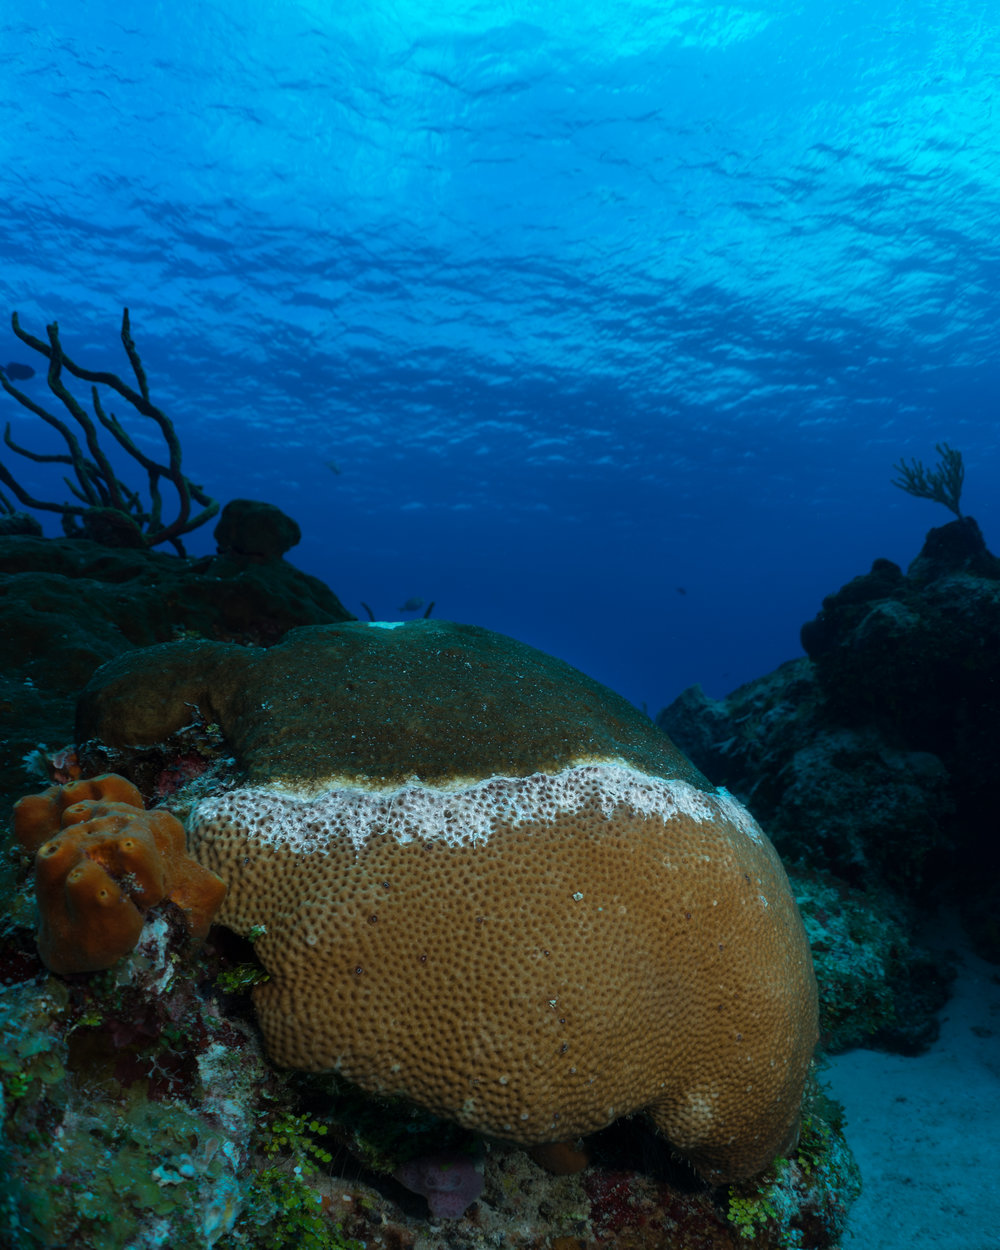 Siderastrea siderea  - Massive Starlet Coral Disease is becoming an increasingly problematic issue on coral reefs. This form of white disease is moving from top to bottom on this coral head. Everything above the white line is dead and covered in algae while everything below is still alive.